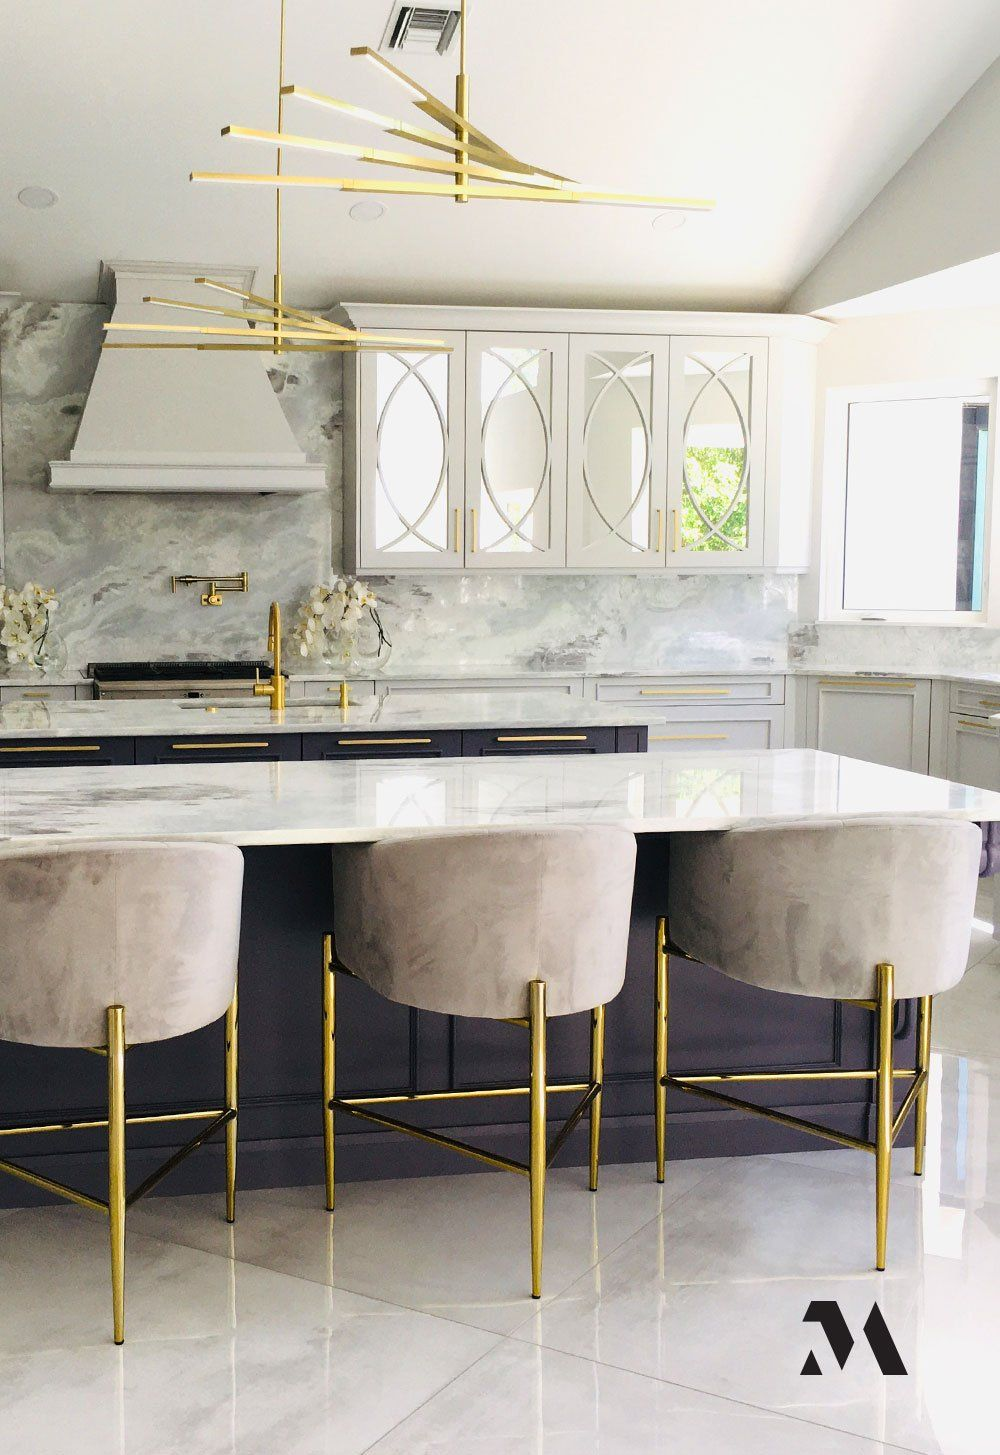 Rochelle Flug And Eva Staiman Of Evro Interiors Have Been Designing Kosher Kitchens For More Than 35 Years When They We In 2020 Kosher Kitchen Kitchen Remodel Kitchen